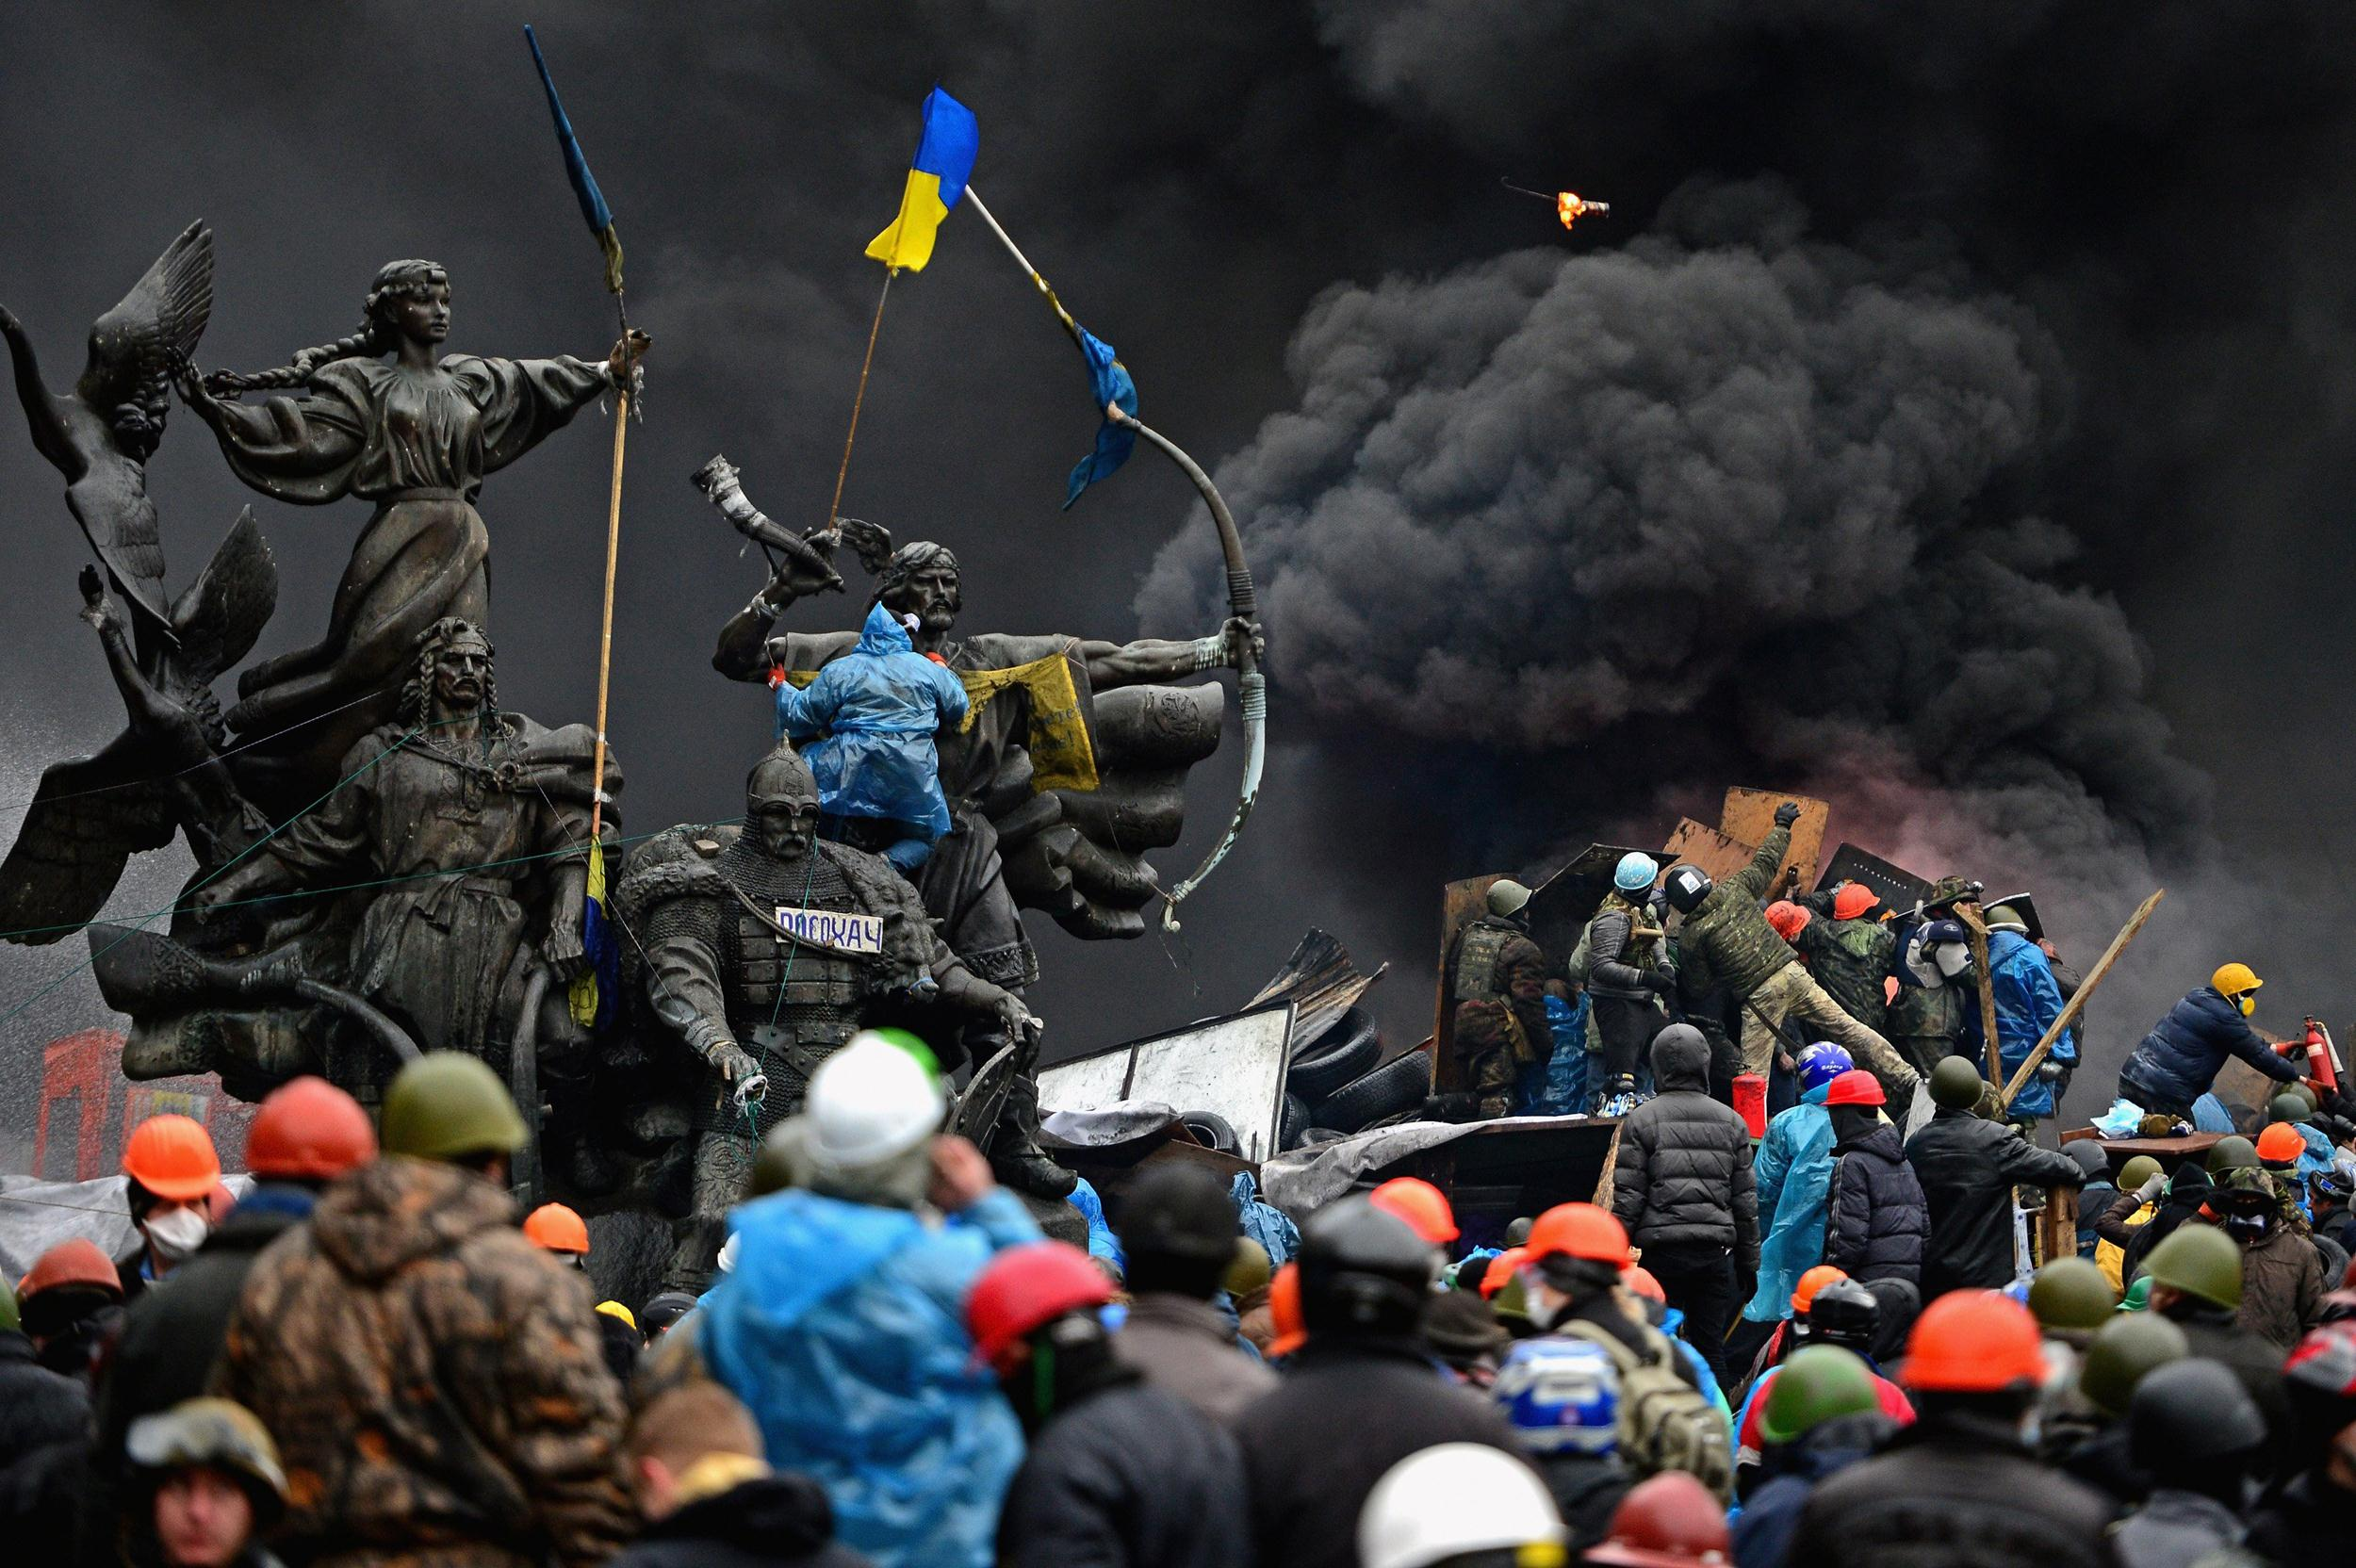 Image: Violence Escalates As Kiev Protests Continue